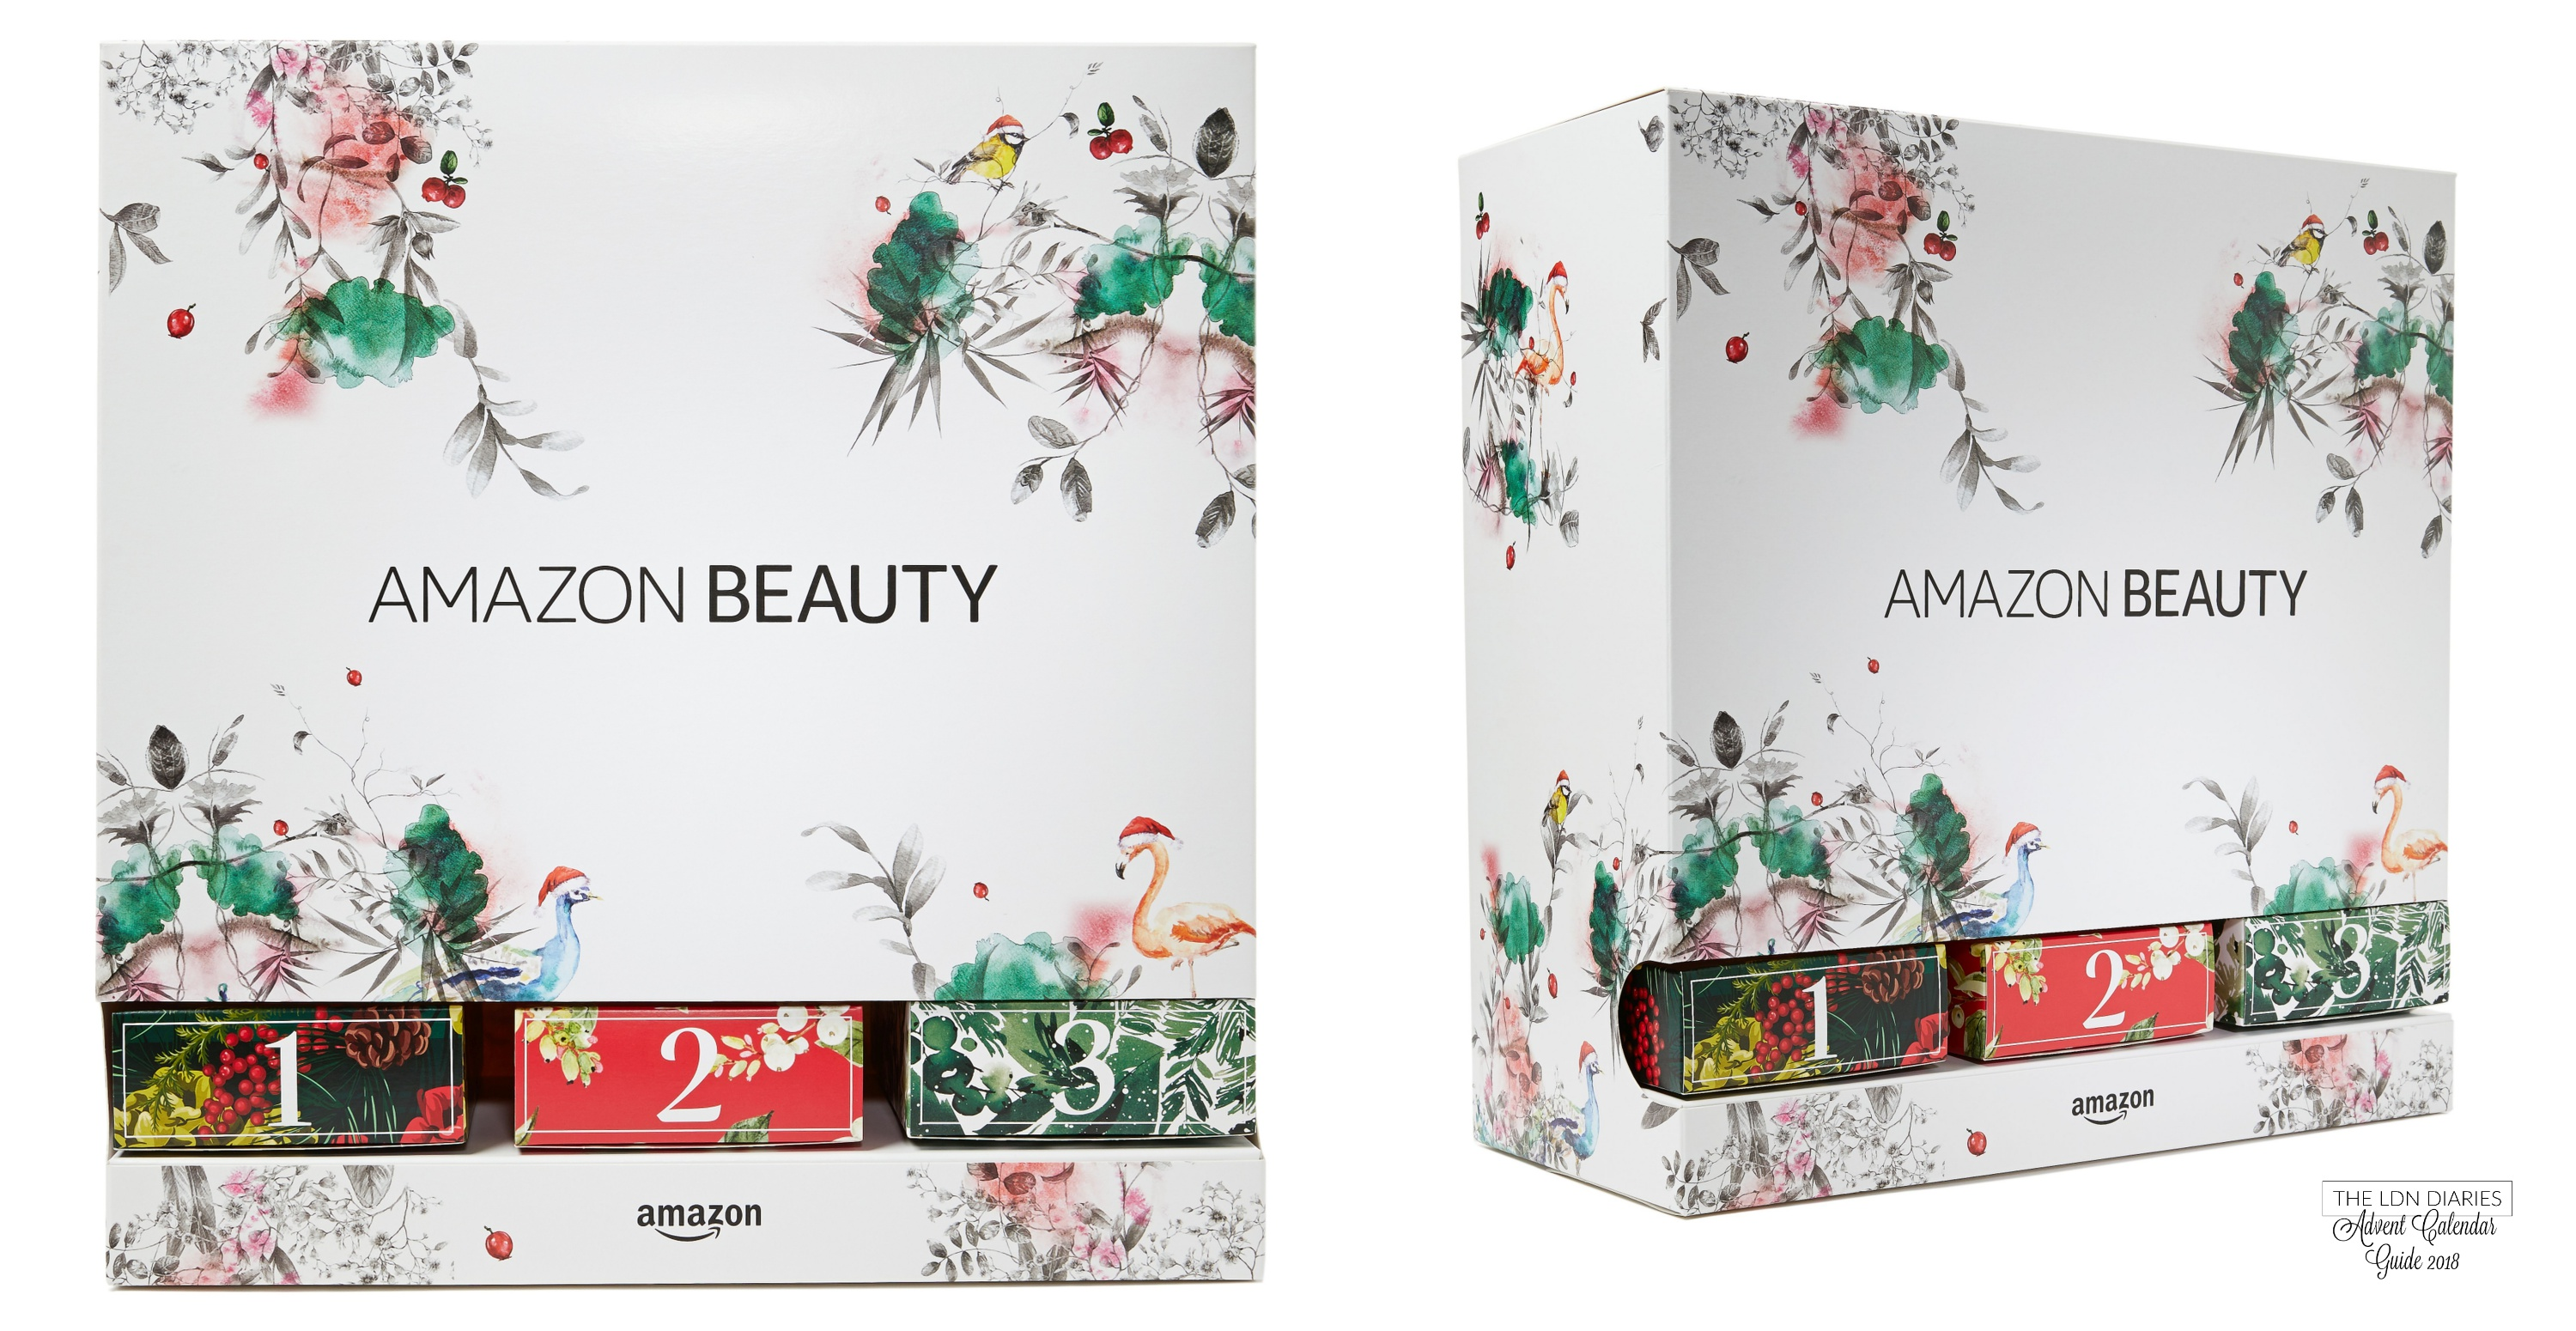 Amazon Beauty Calendar 2018 - The LDN Diaries